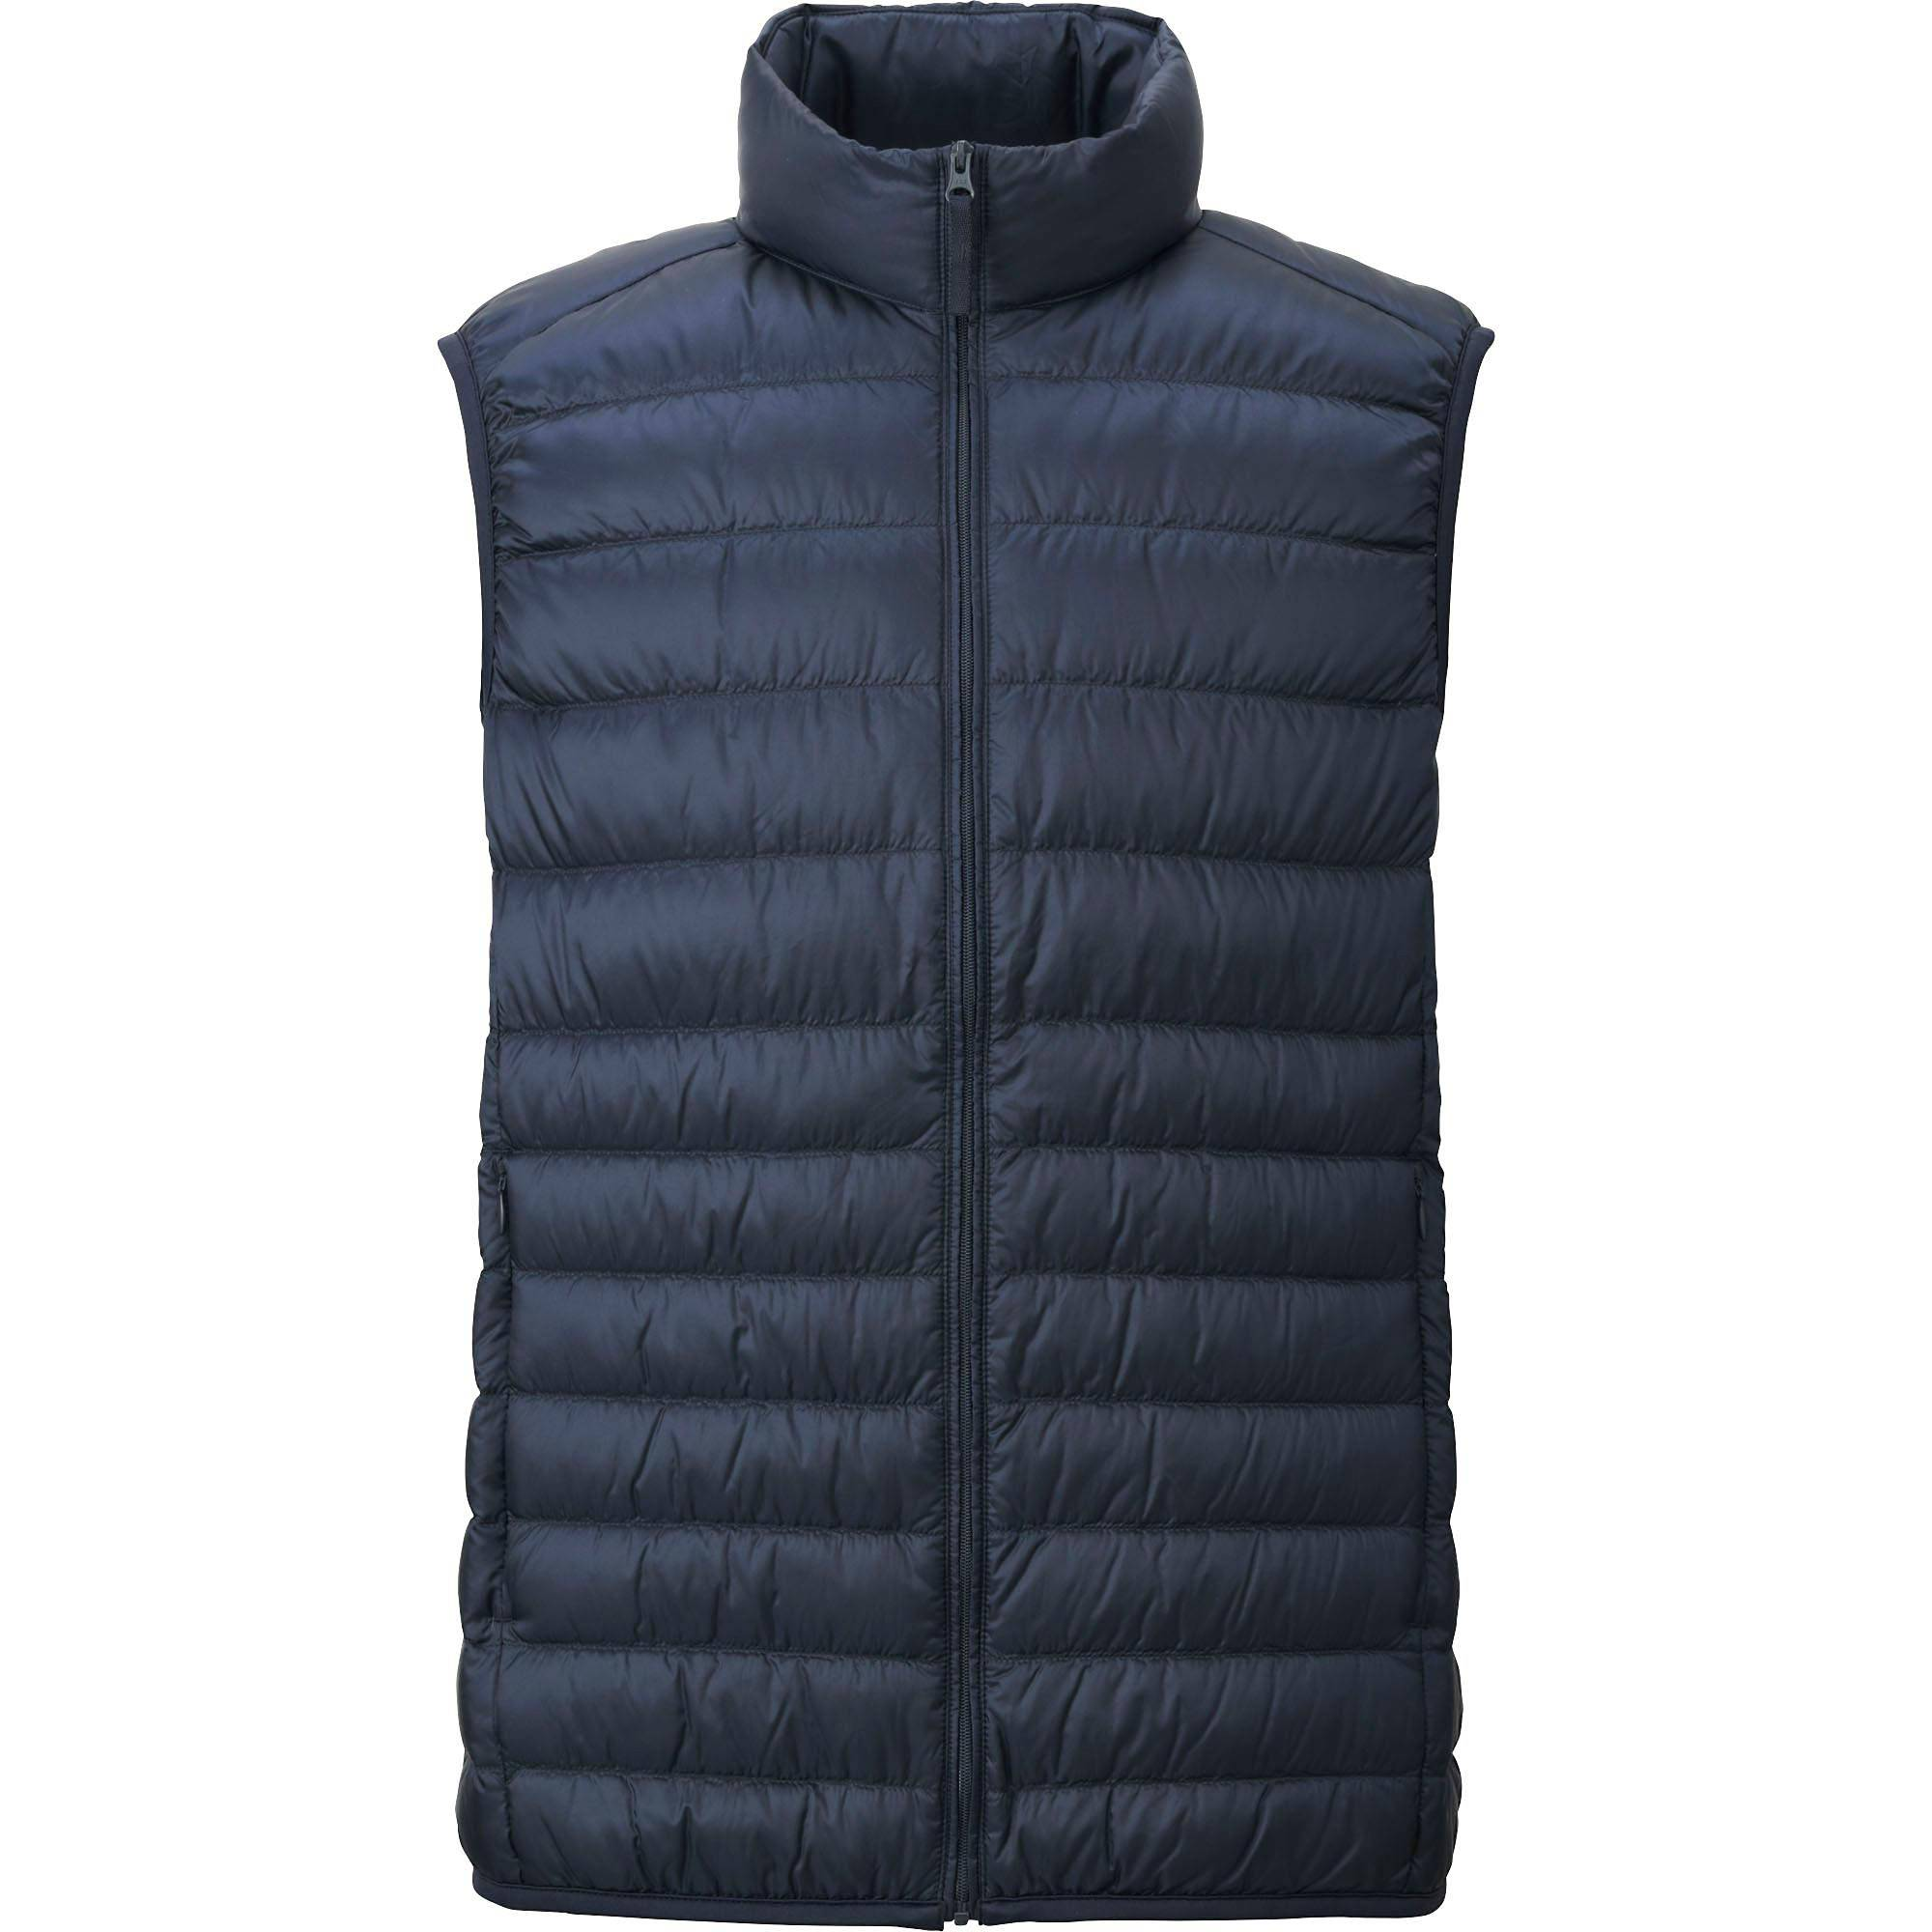 down vests men ultra light down vest, light gray, small VSNKZJX